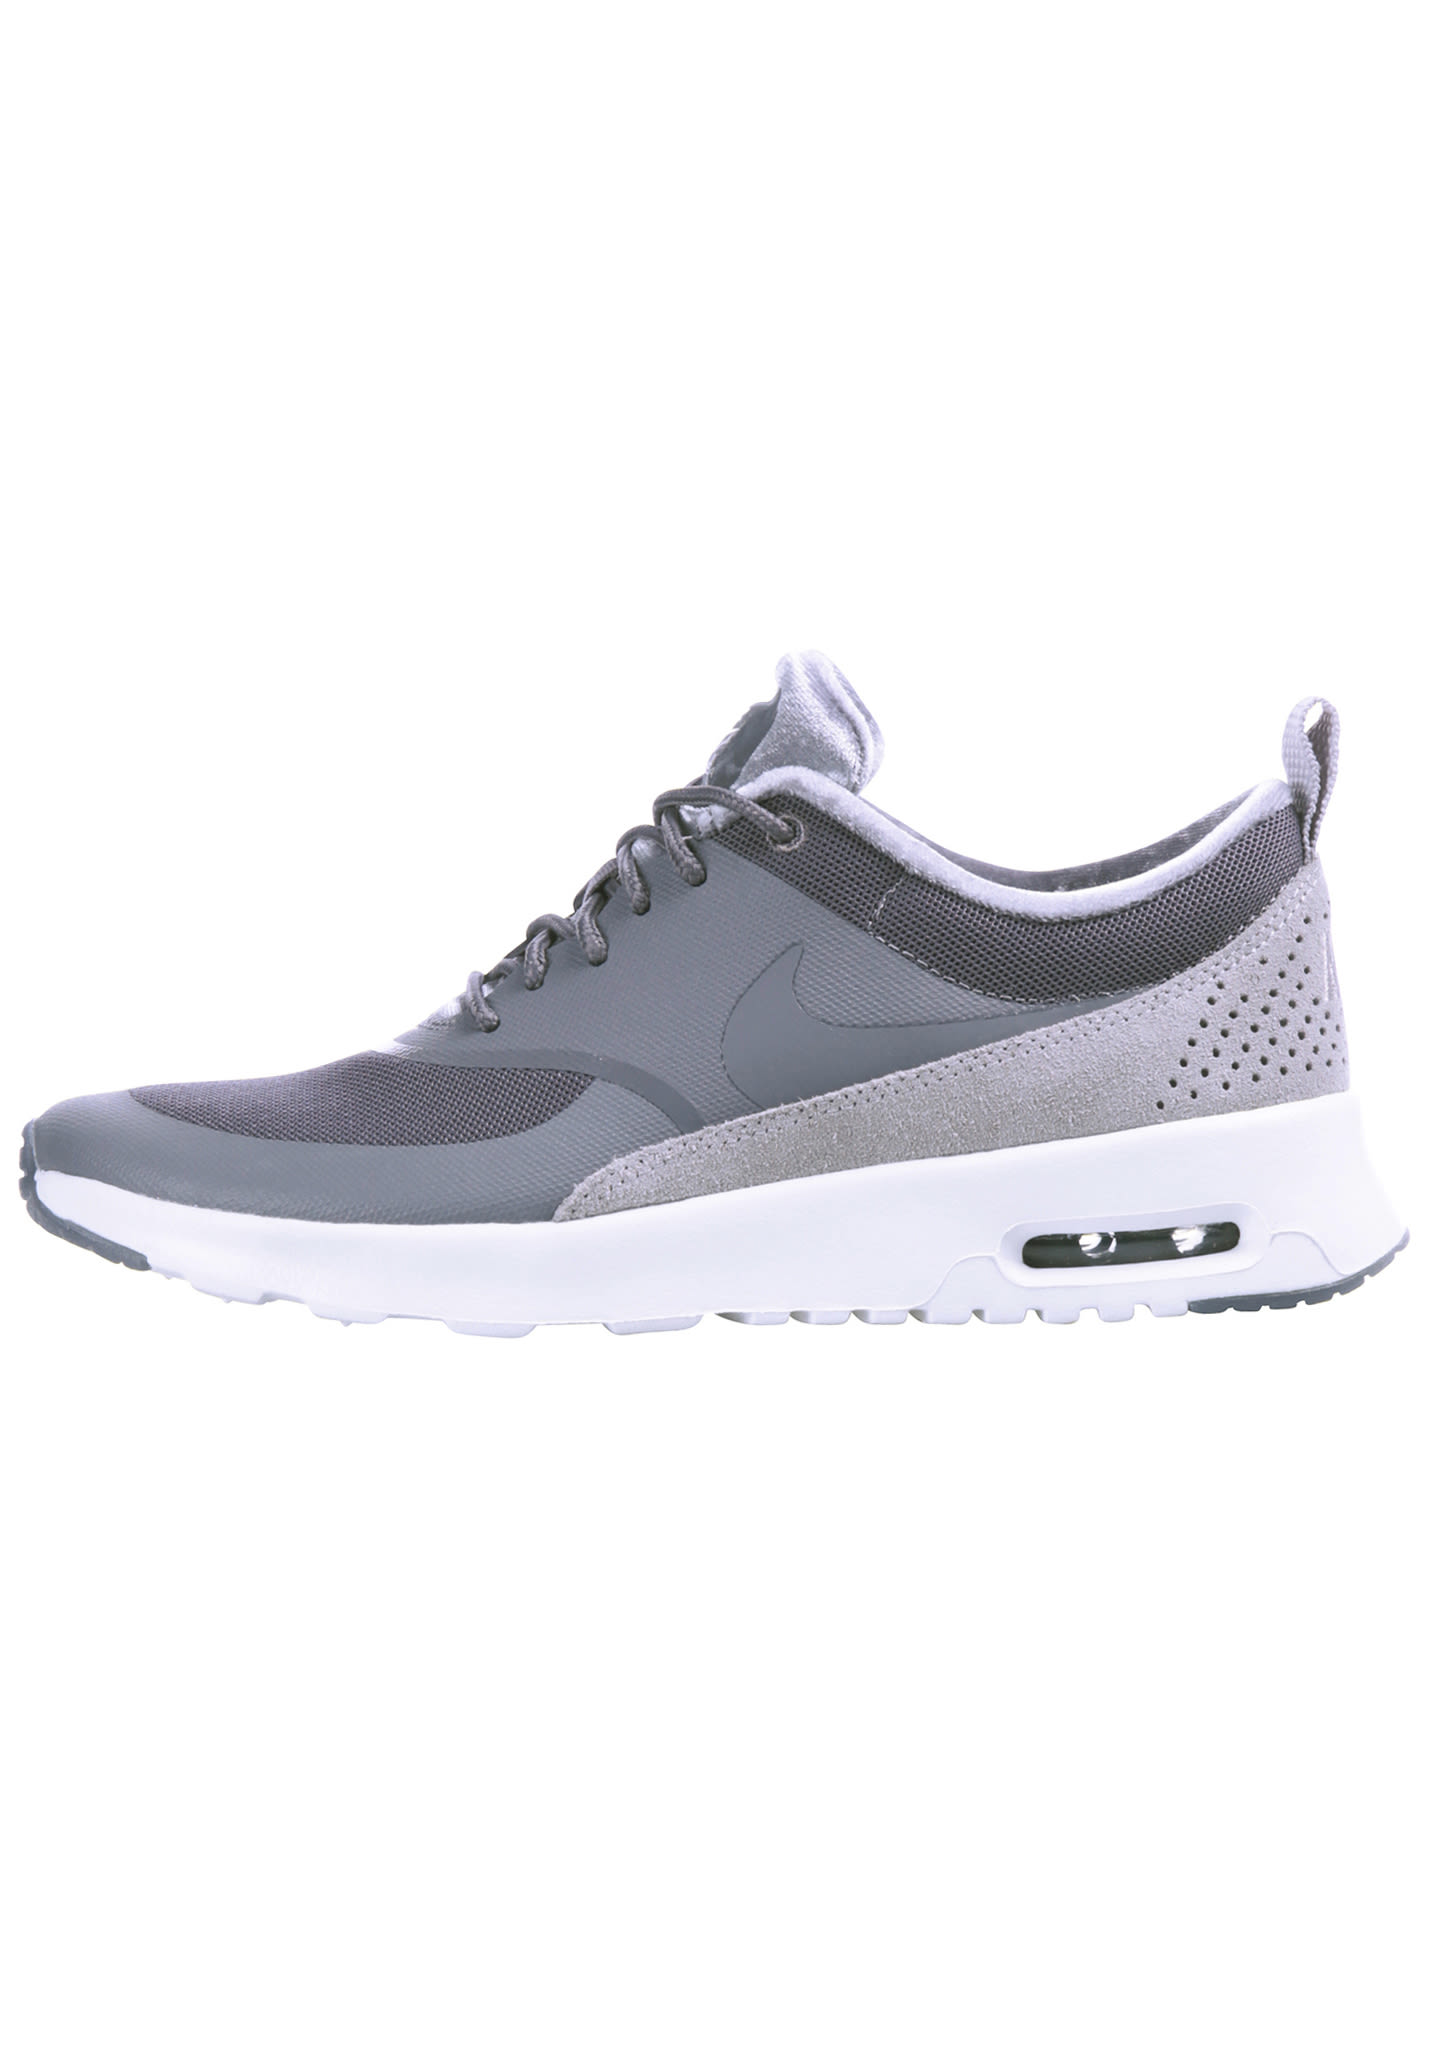 100% authentique 45813 a1043 NIKE SPORTSWEAR Air Max Thea LX - Sneakers for Women - Grey